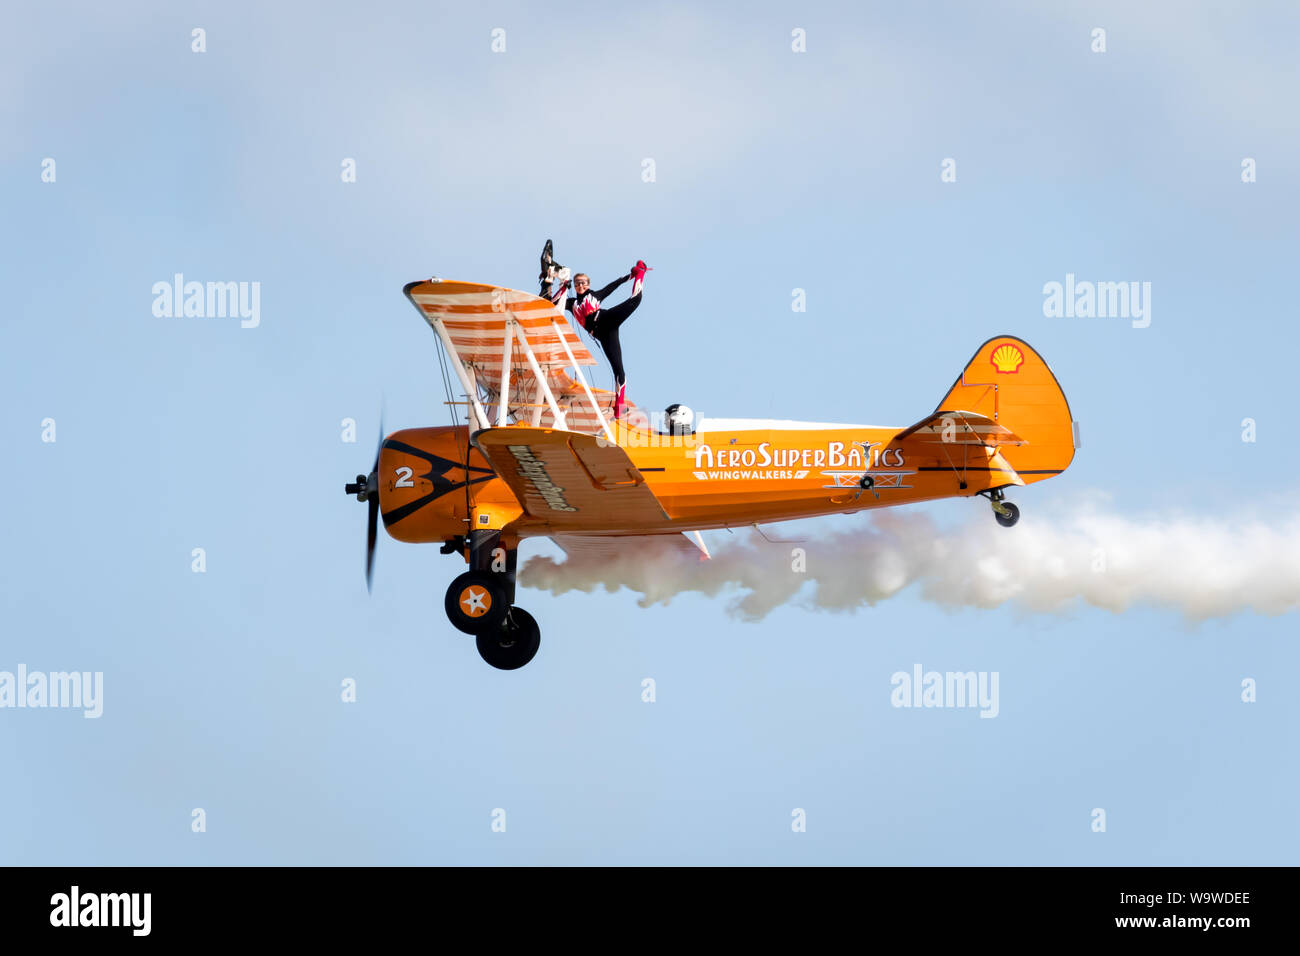 Barnstormers Stock Photos & Barnstormers Stock Images - Alamy